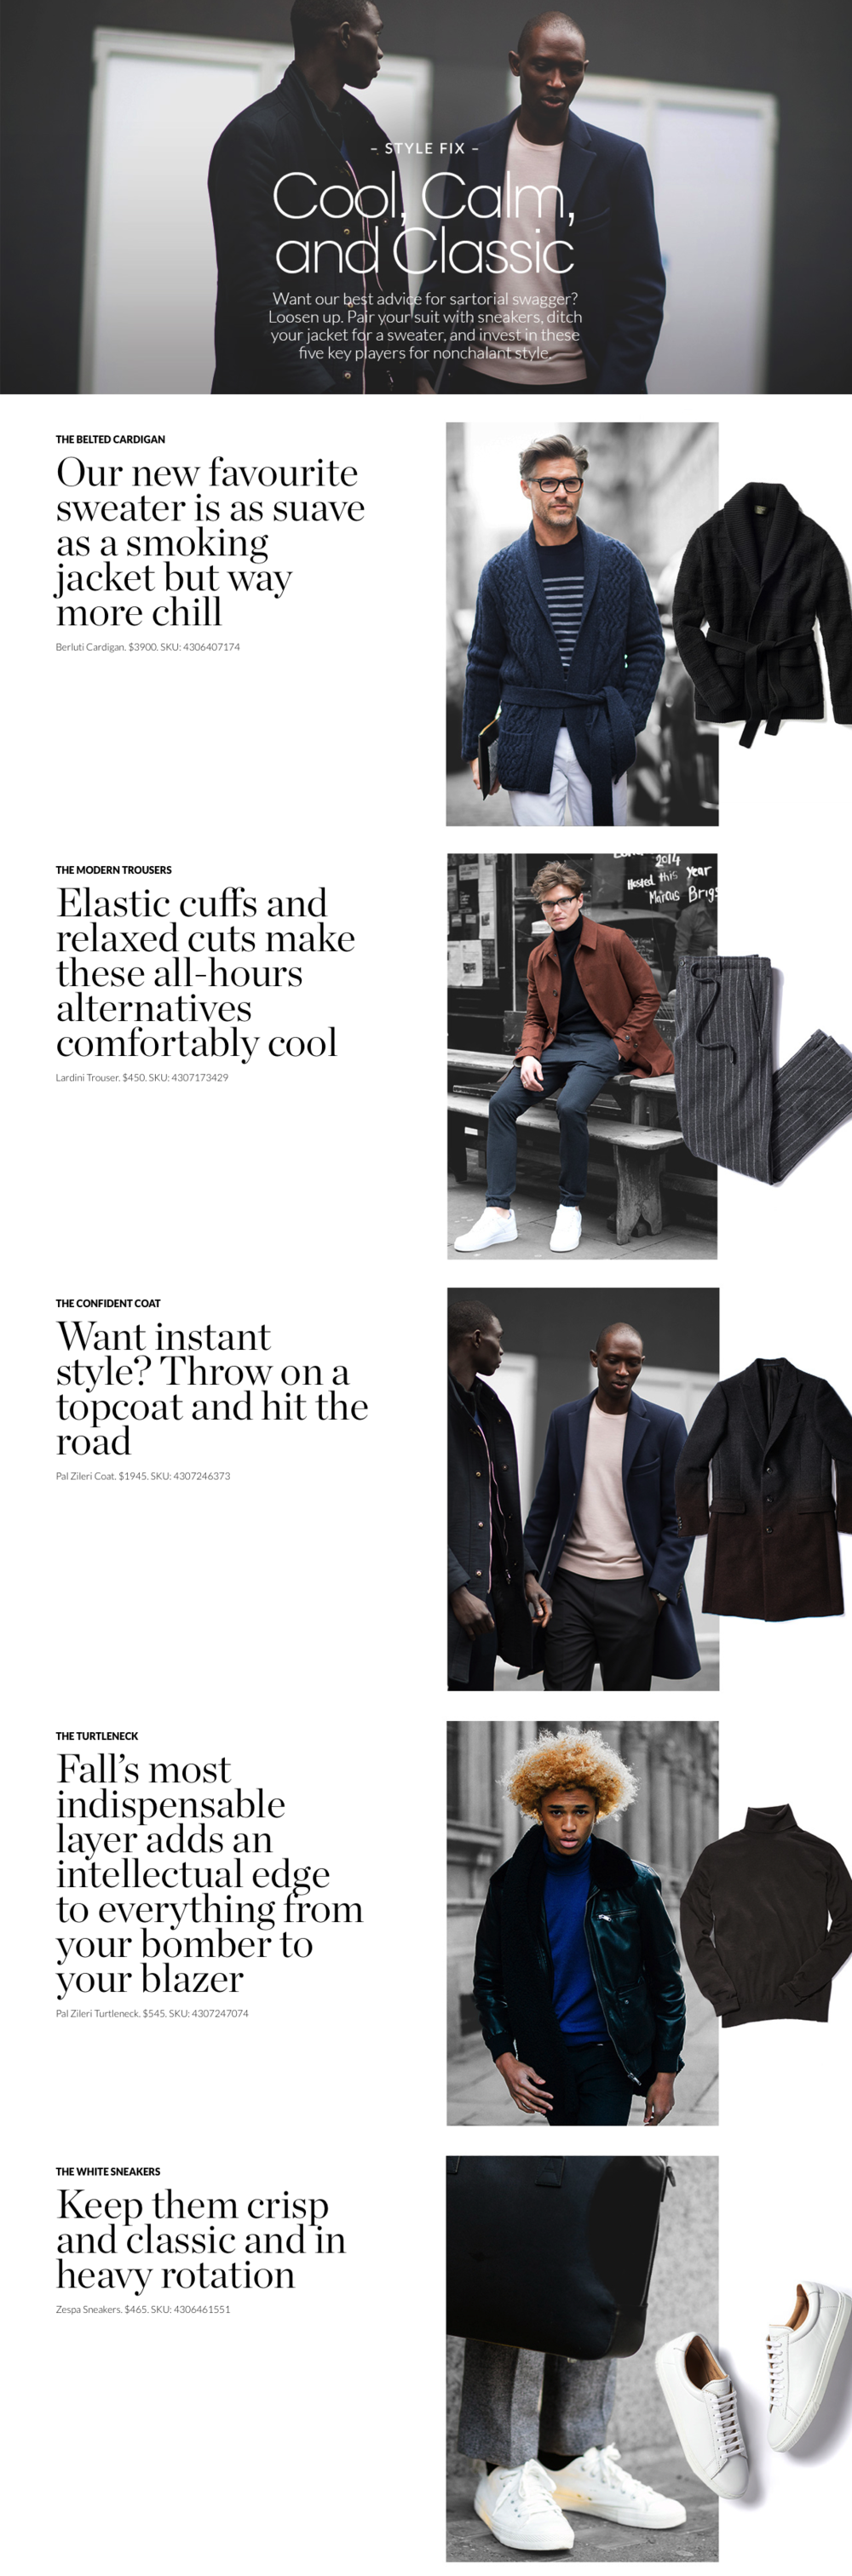 Holts Men July Cover.png